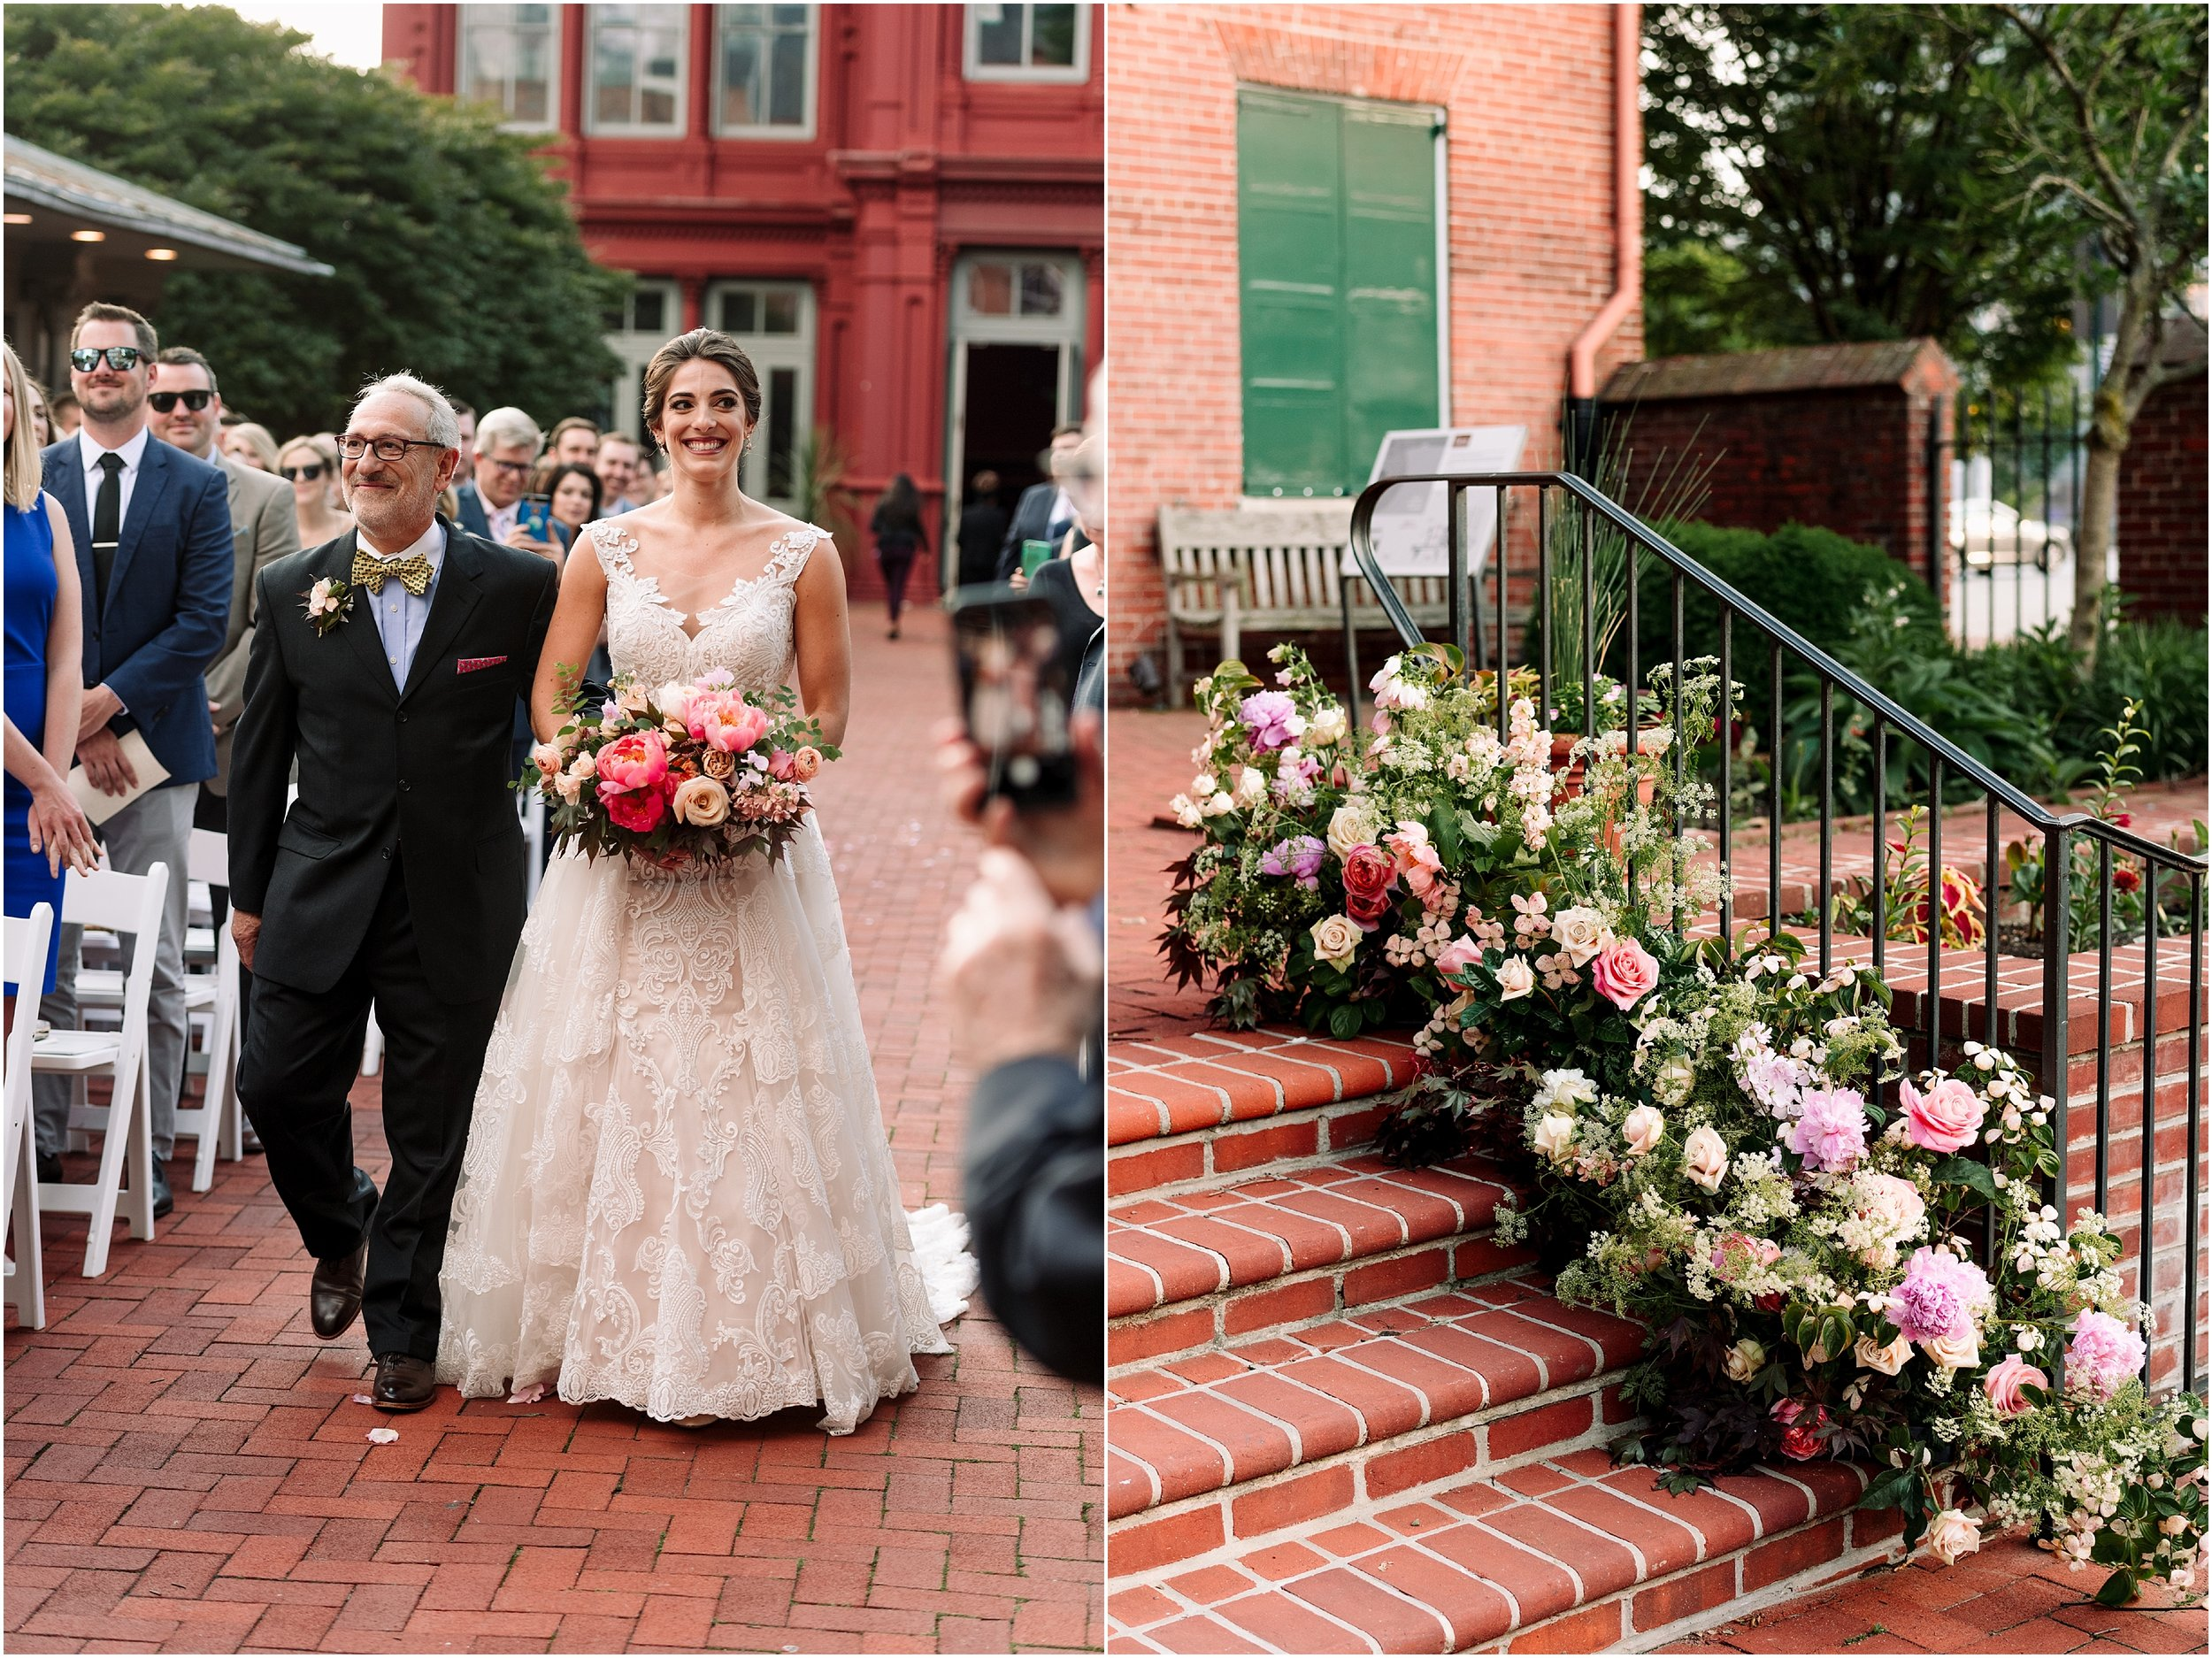 hannah leigh photography 1840s plaza wedding baltimore md_0054.jpg